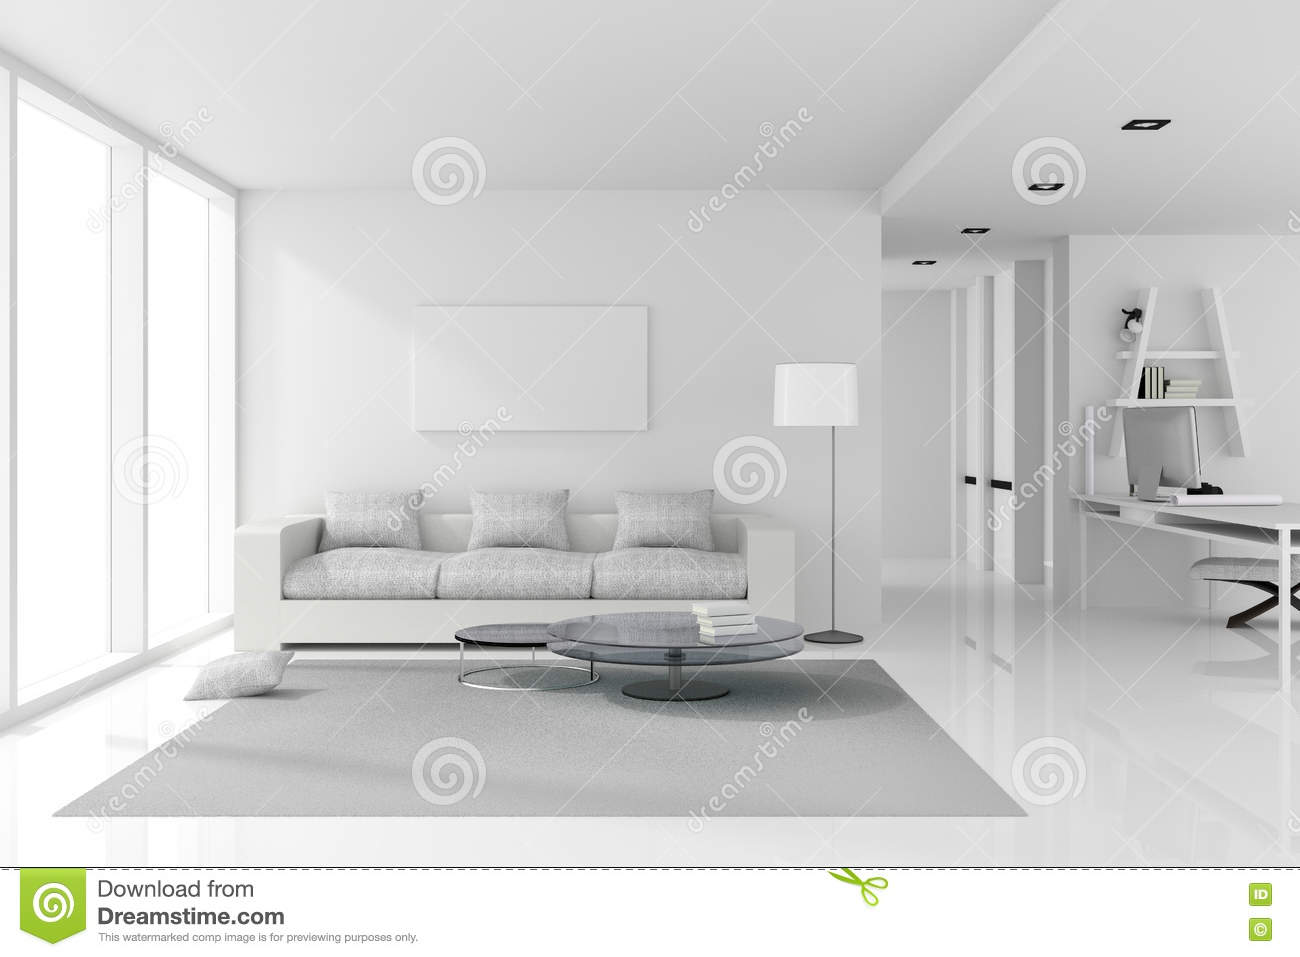 89 Interior Design Rendering Free Interior Design Rendering Bedroom 3d 3d Condo Living